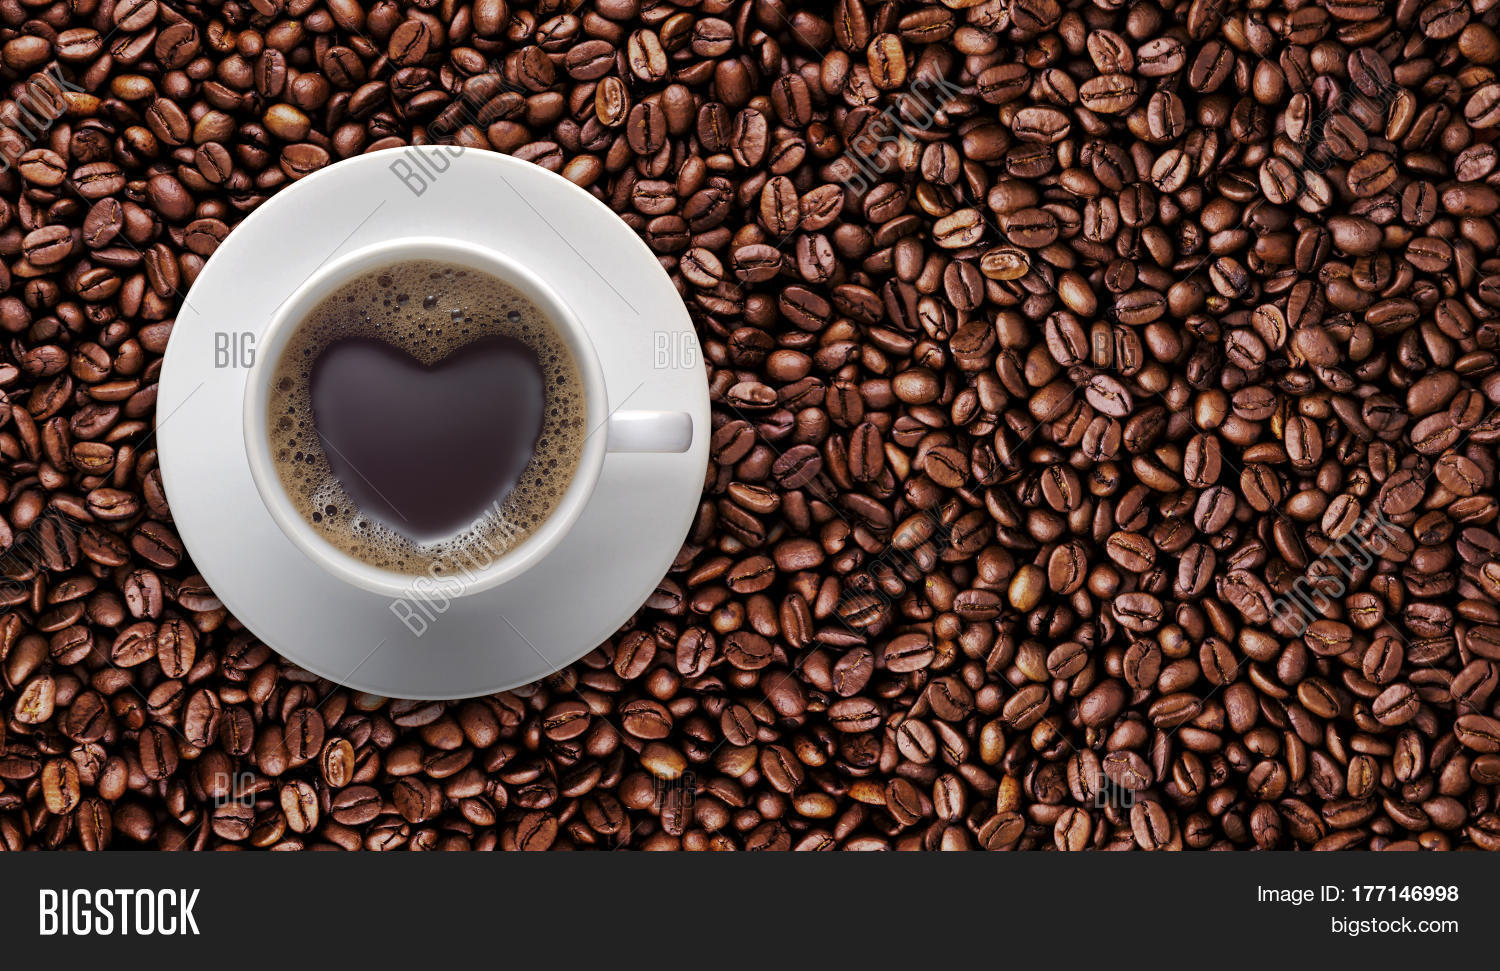 Coffee lover sign black coffee image photo bigstock coffee lover sign black coffee cup on top pile of raw brown coffee beans with biocorpaavc Gallery